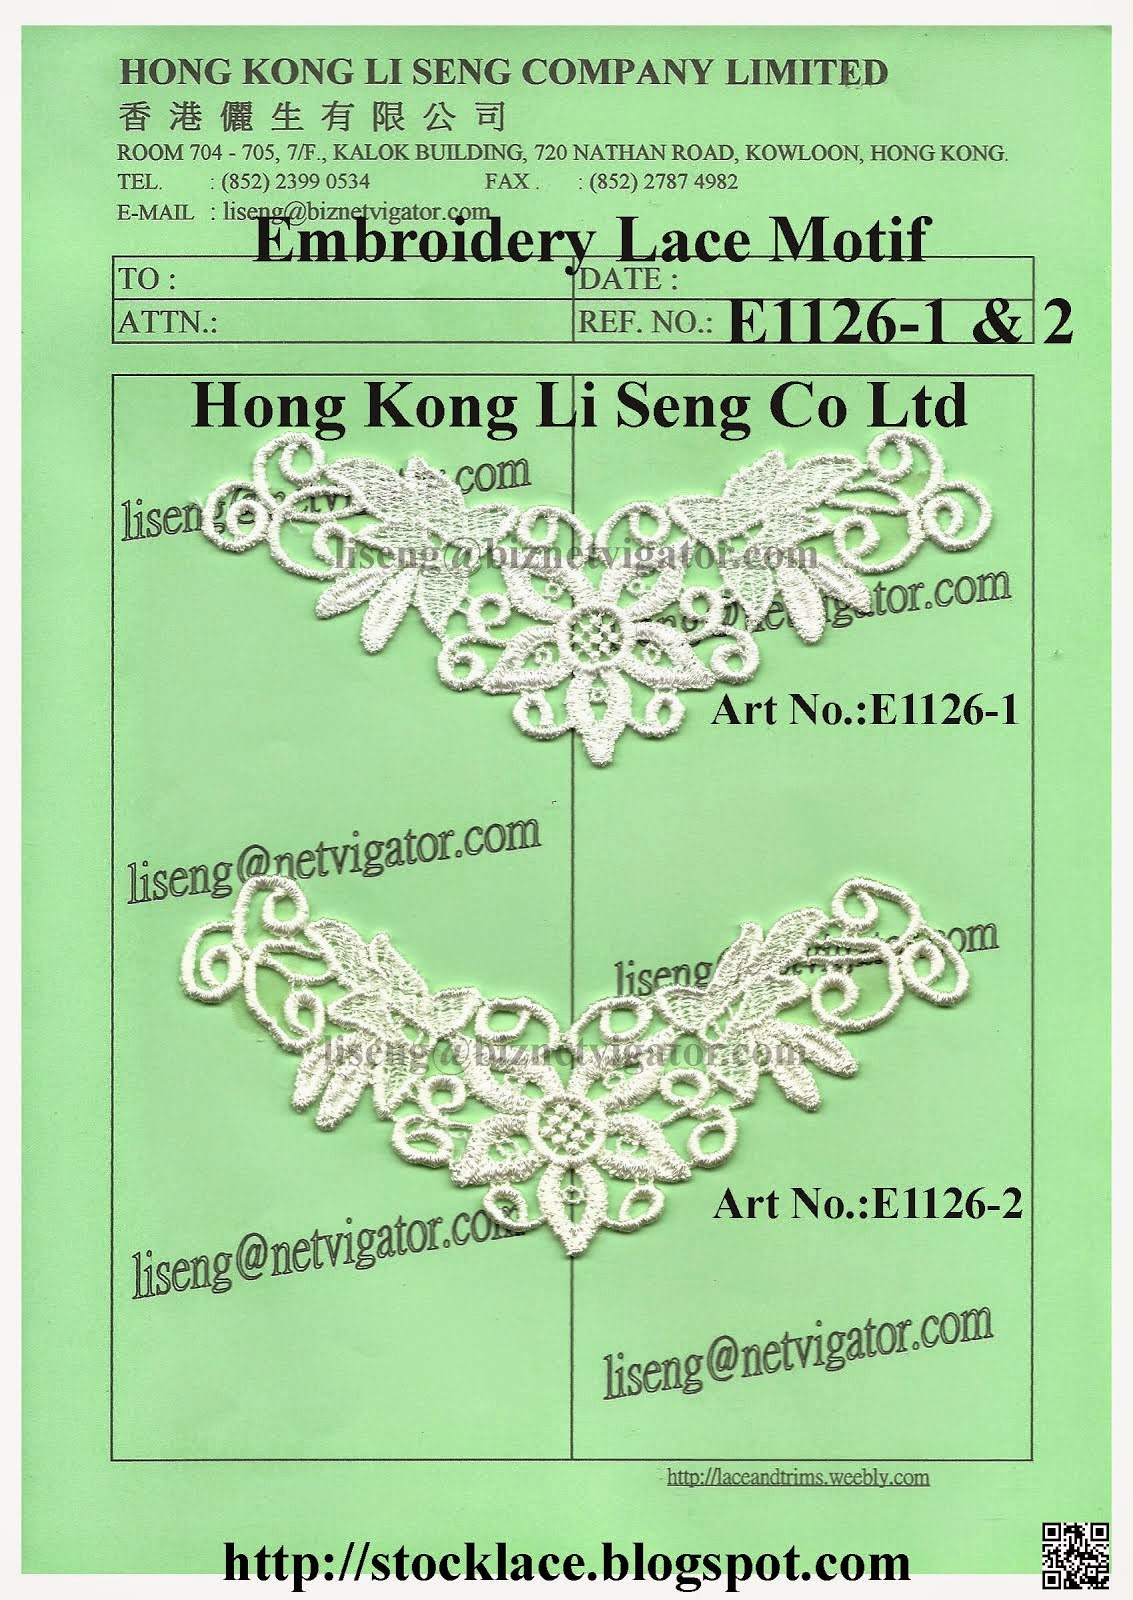 New Stock Embroidery Lace Motif Manufacturer, Wholesale and Supplier - Hong Kong Li Seng Co Ltd